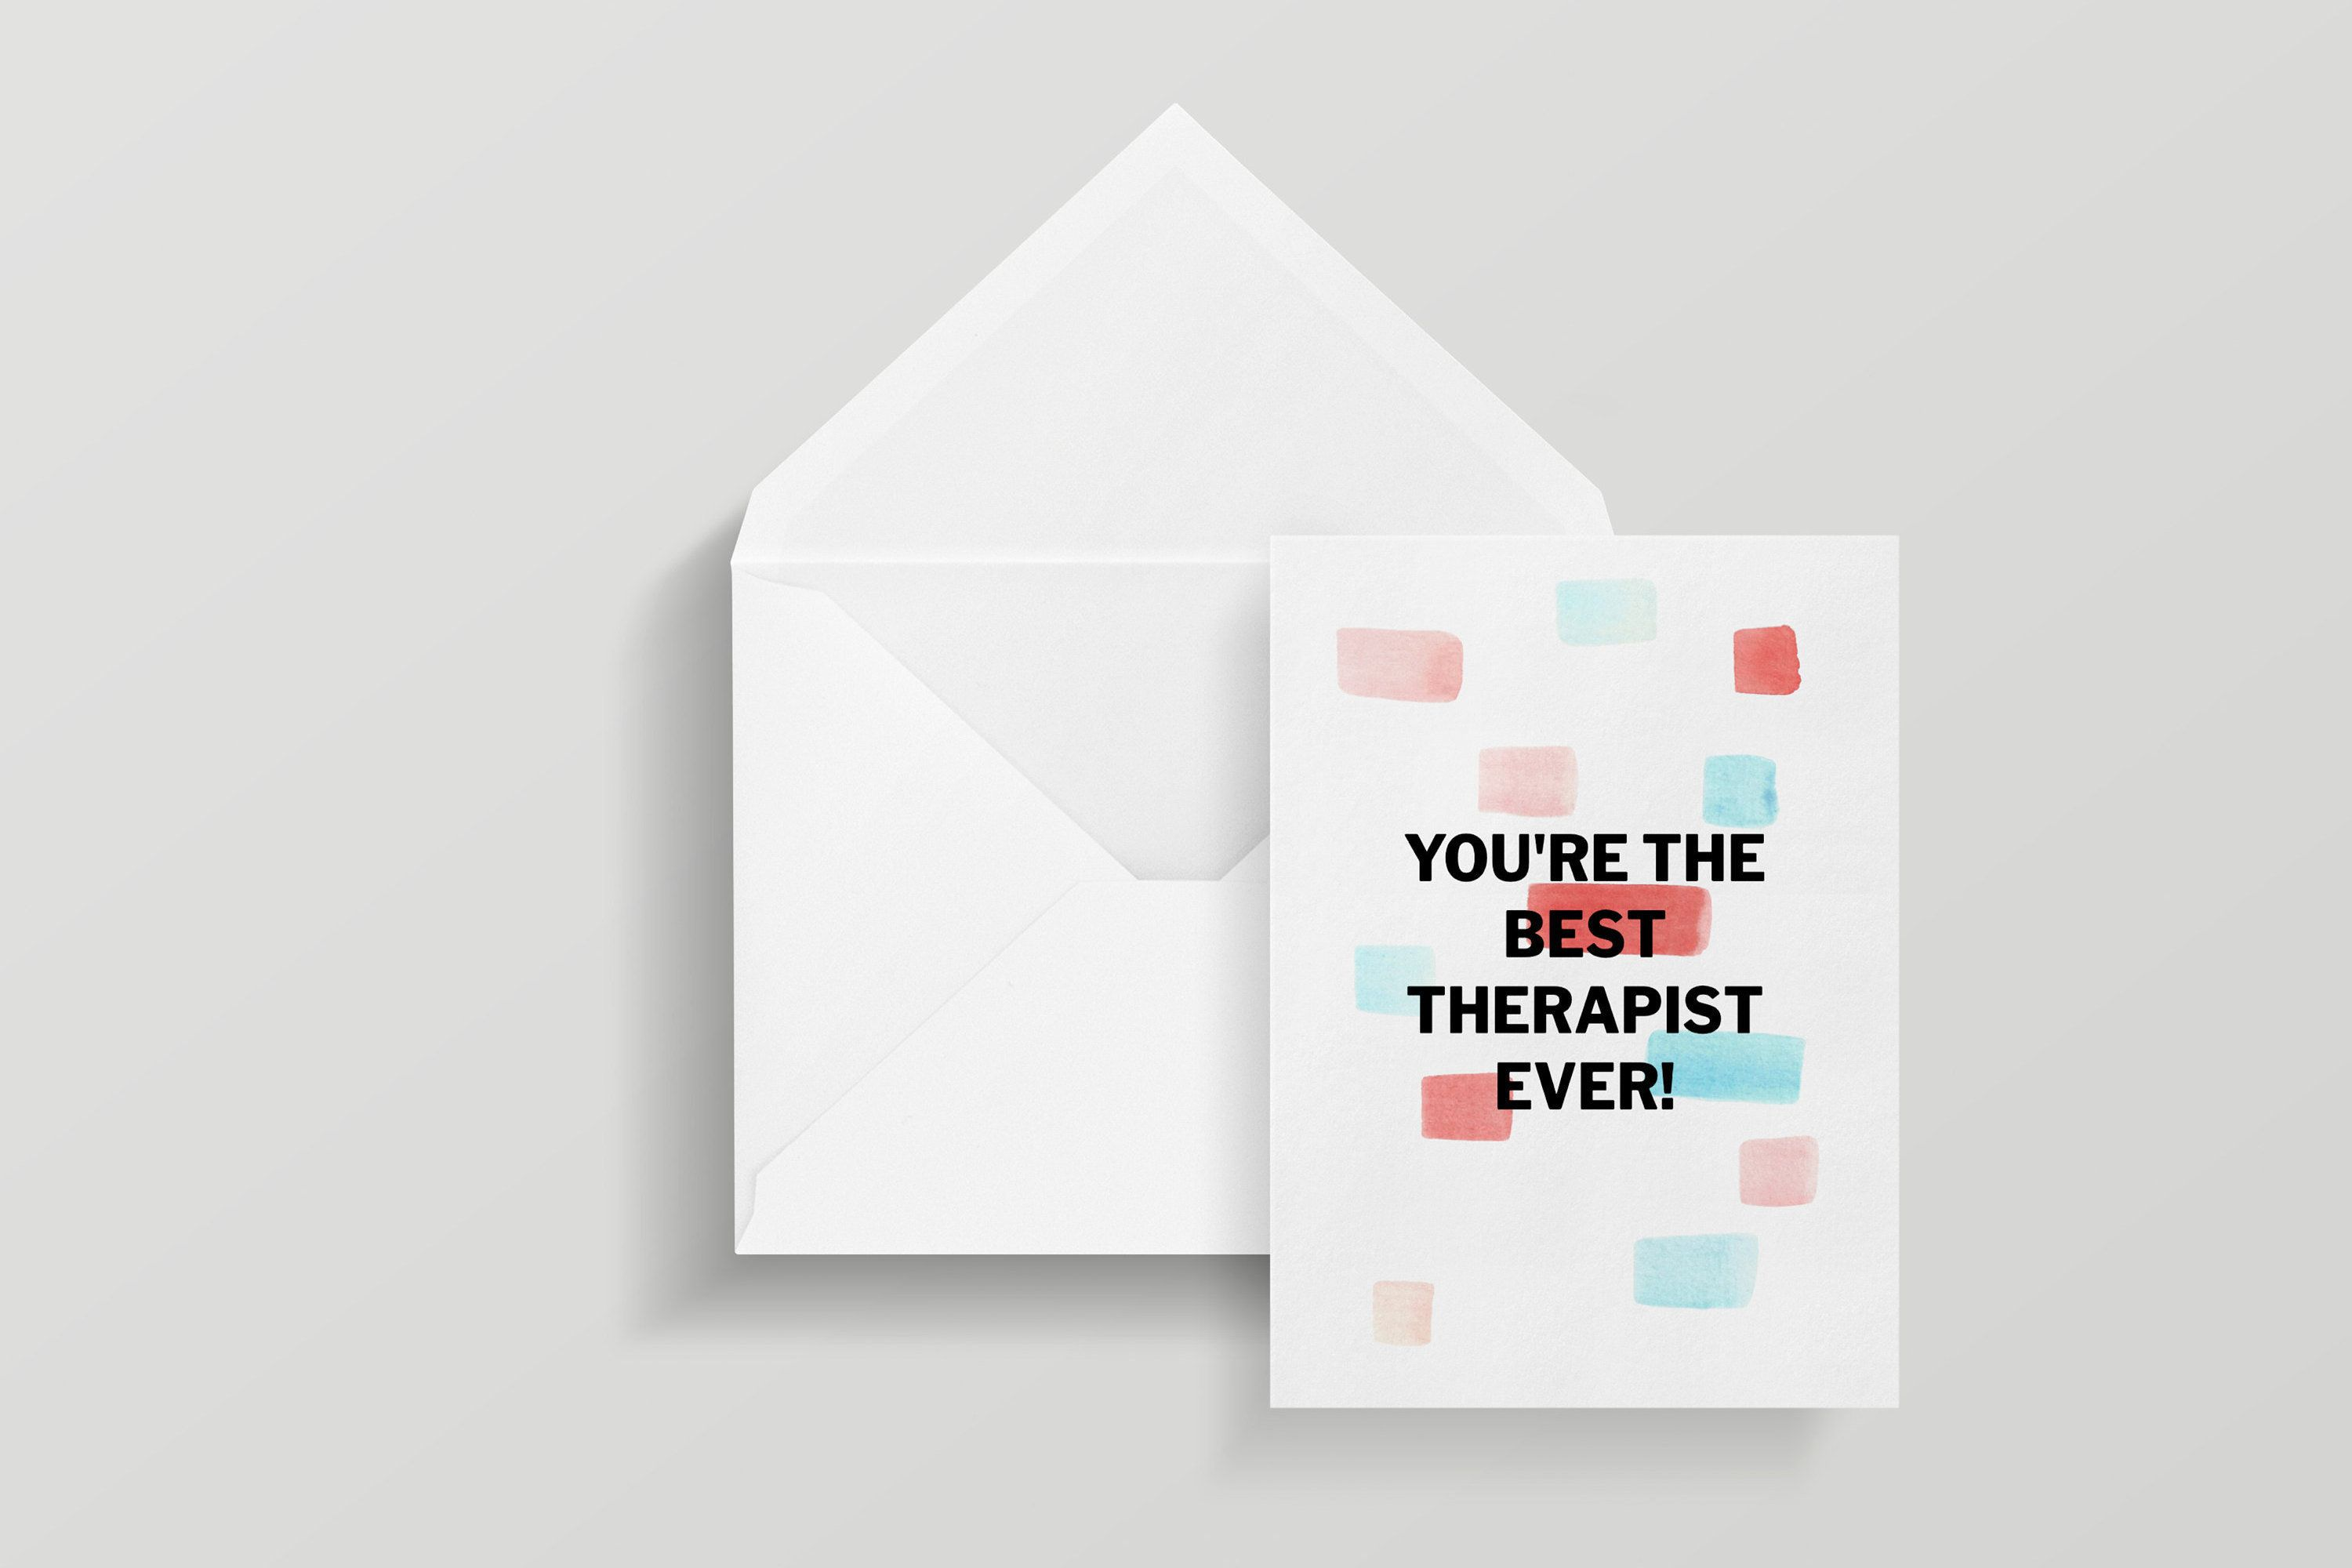 35 Best Therapist Ever Greeting Card With Envelope   Etsy   Greeting ...